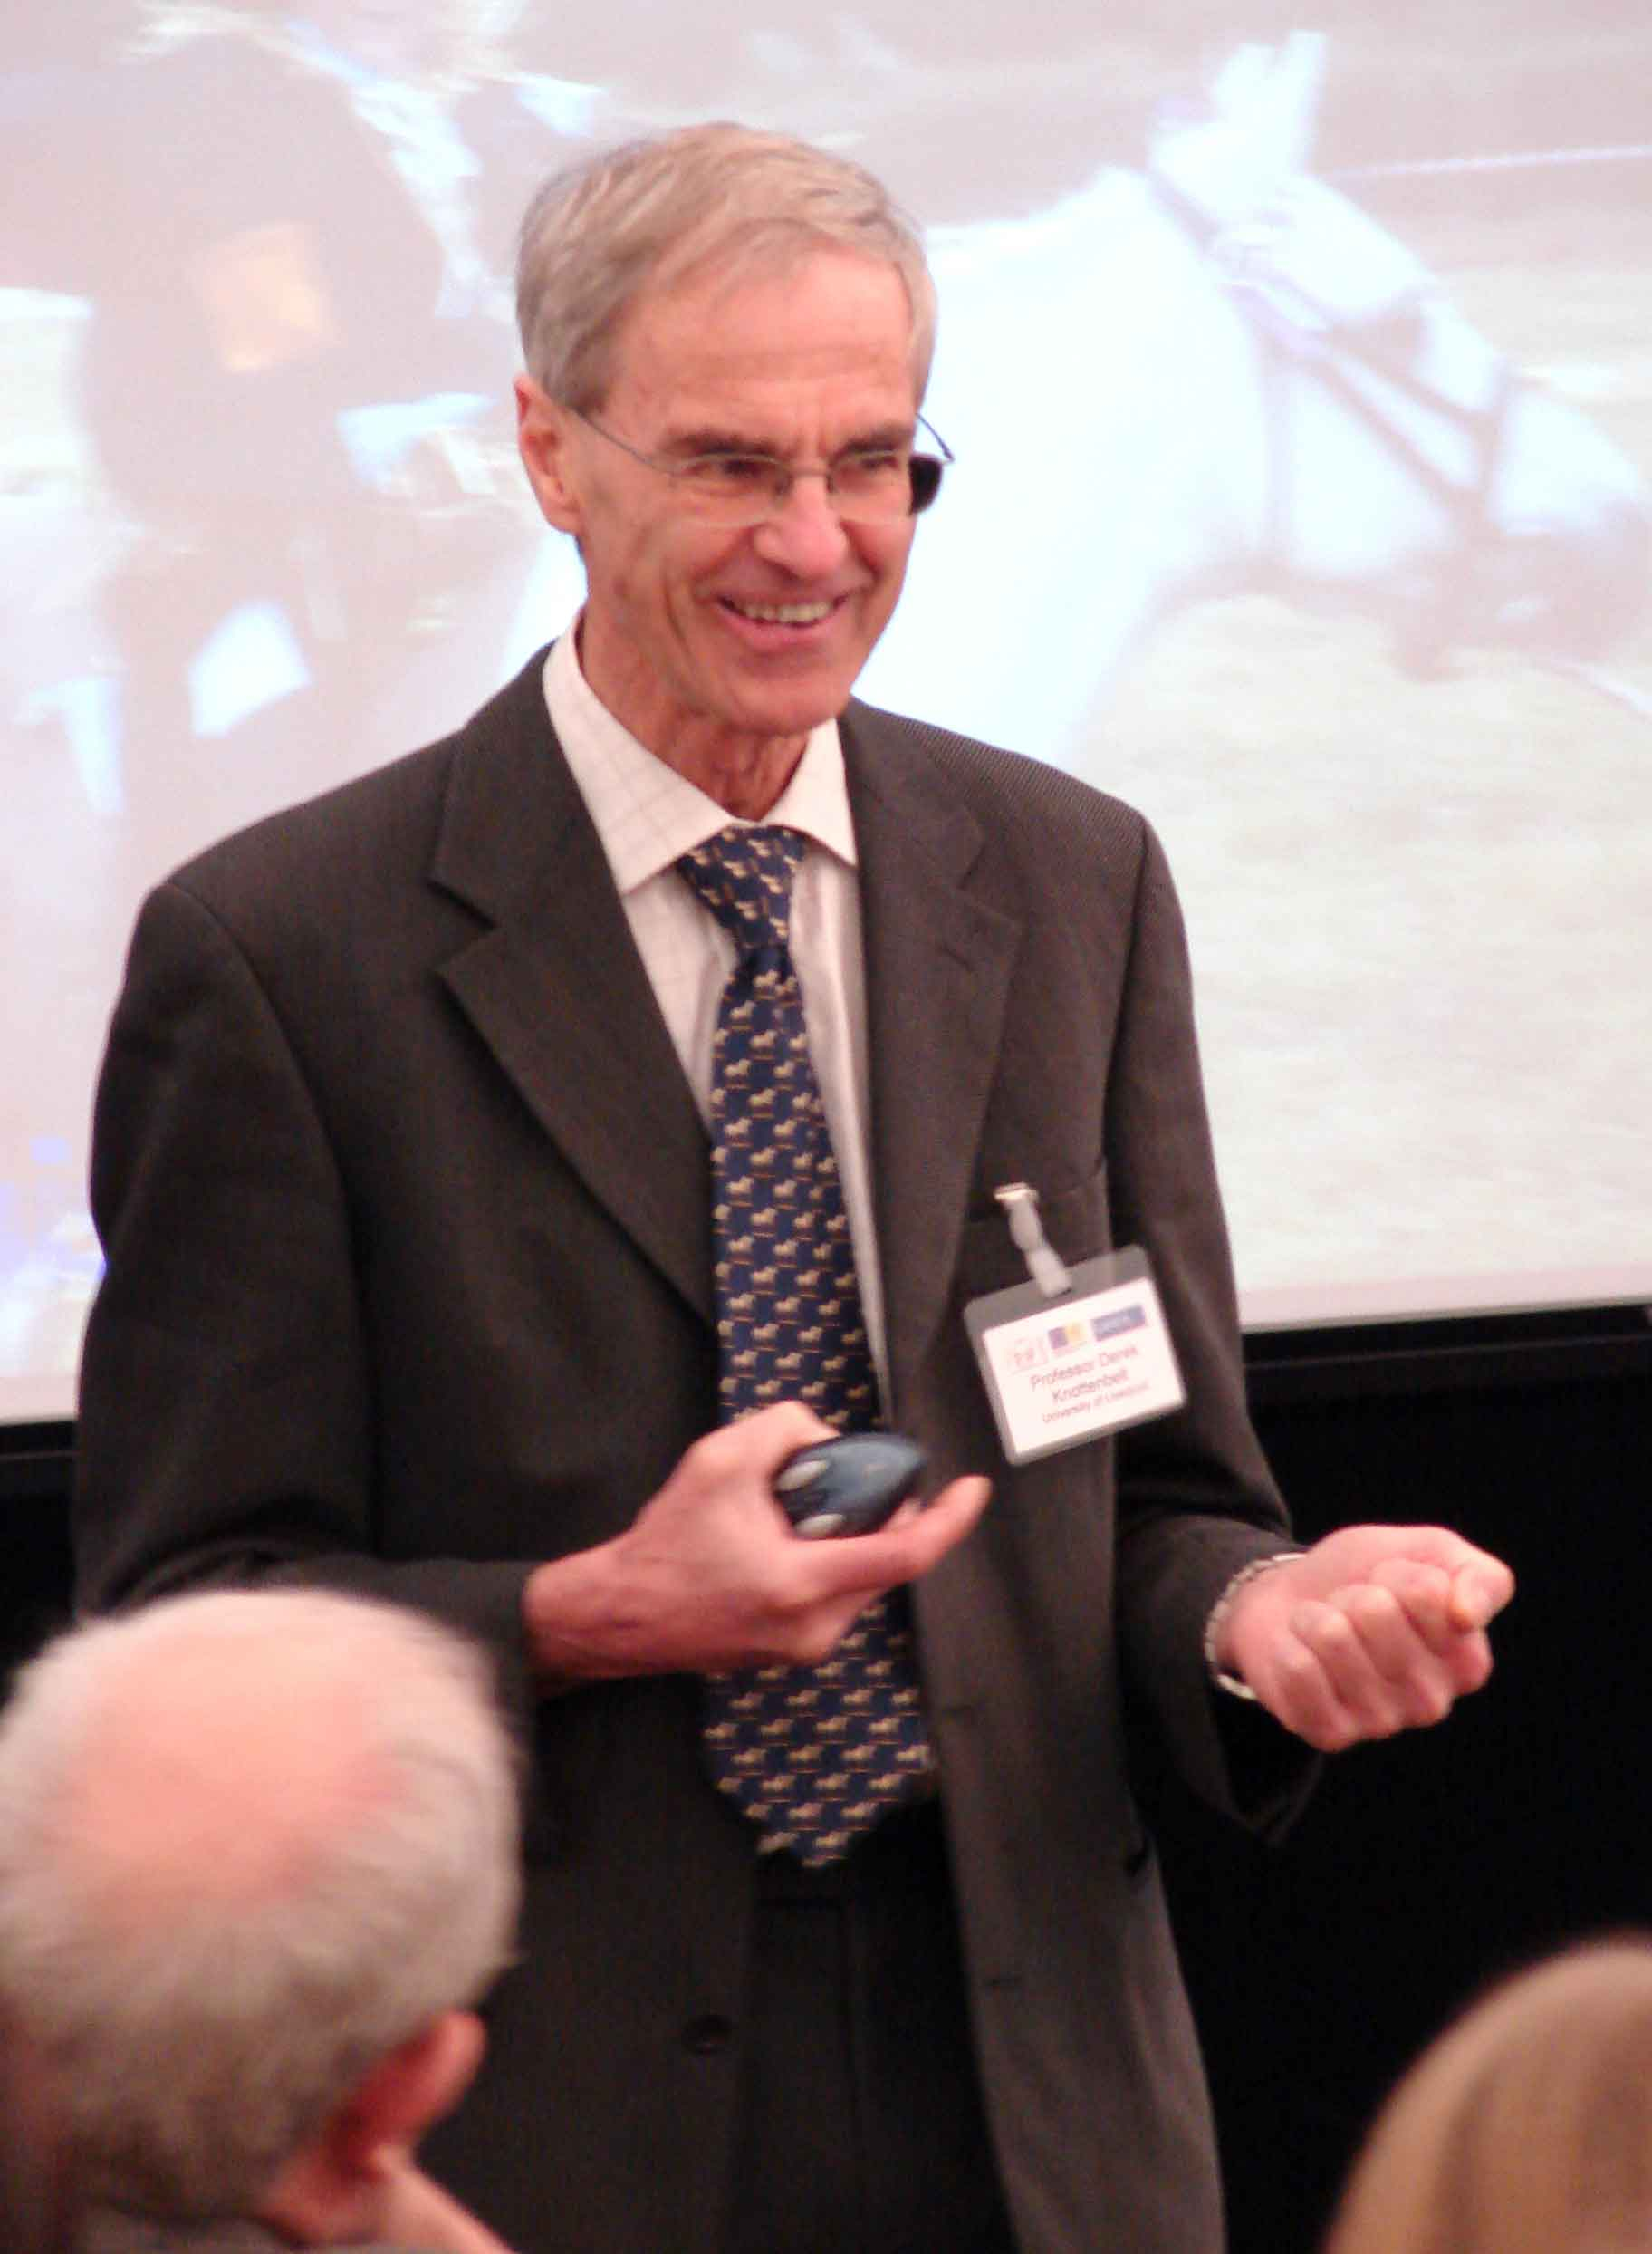 Professor Derek Knottenbelt at the Conference